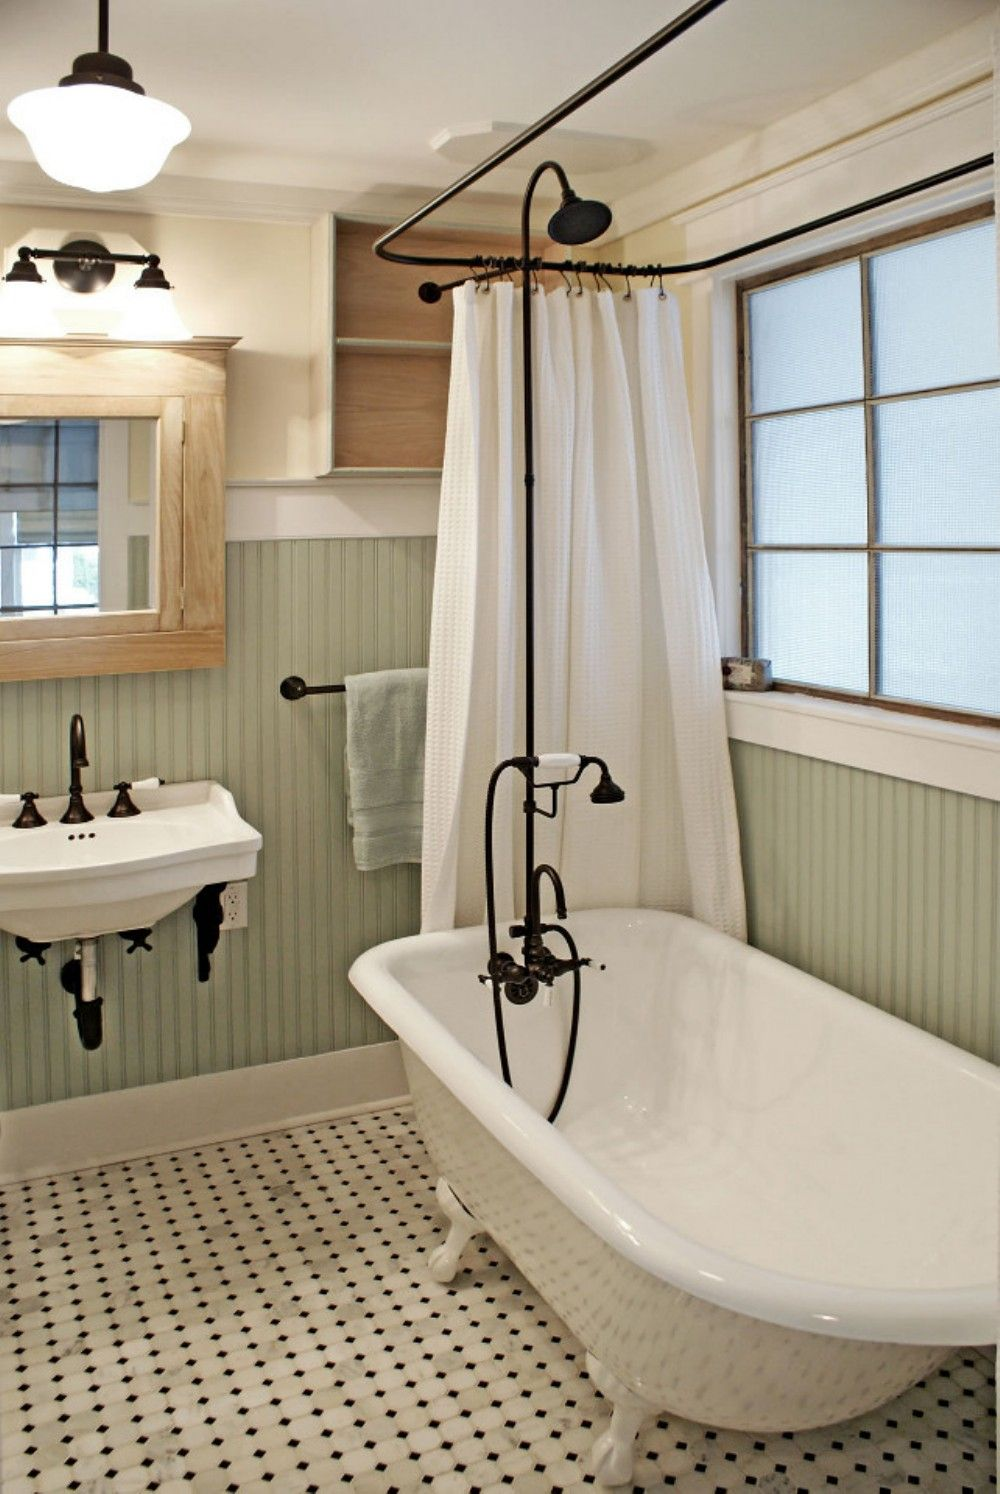 How To Create A Vintage Interior Decor For Your Bathroom